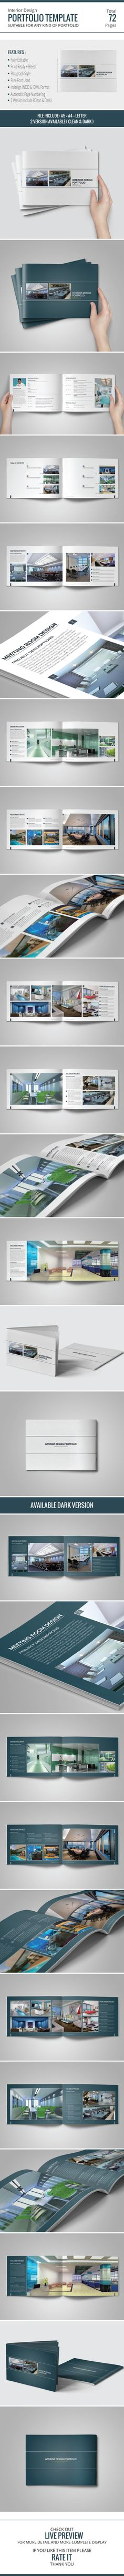 Interior Design Portfolio Template on Behance